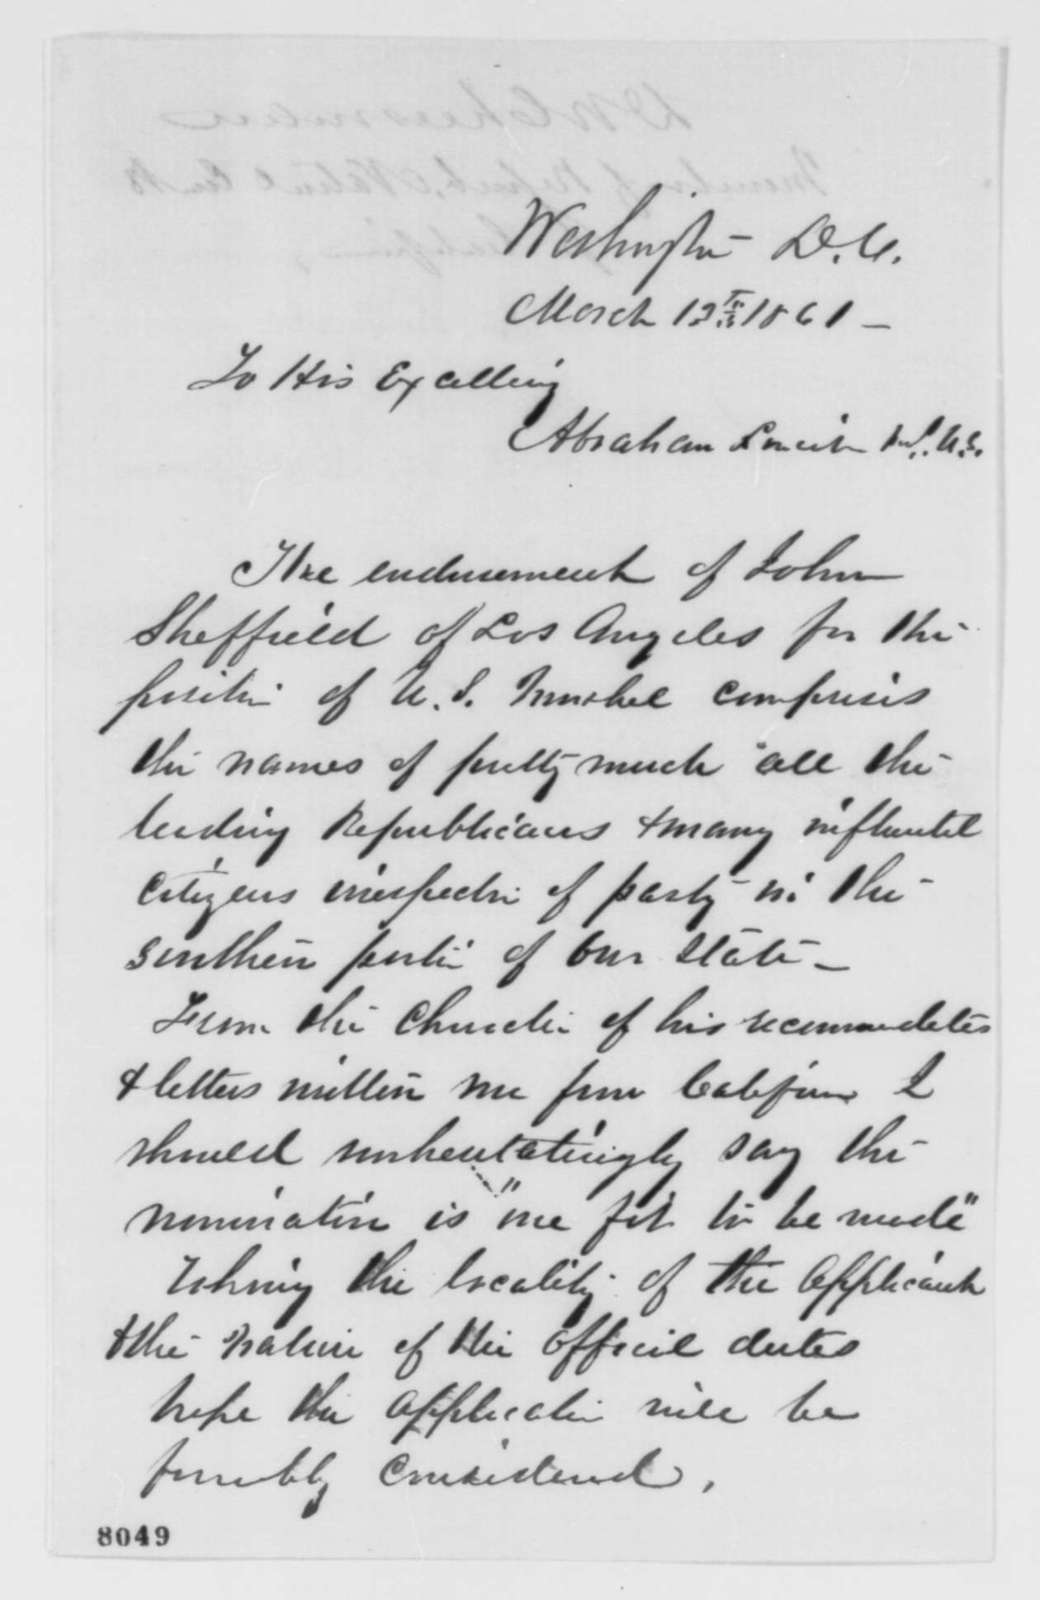 David W. Cheesman to Abraham Lincoln, Wednesday, March 13, 1861  (Recommendation)